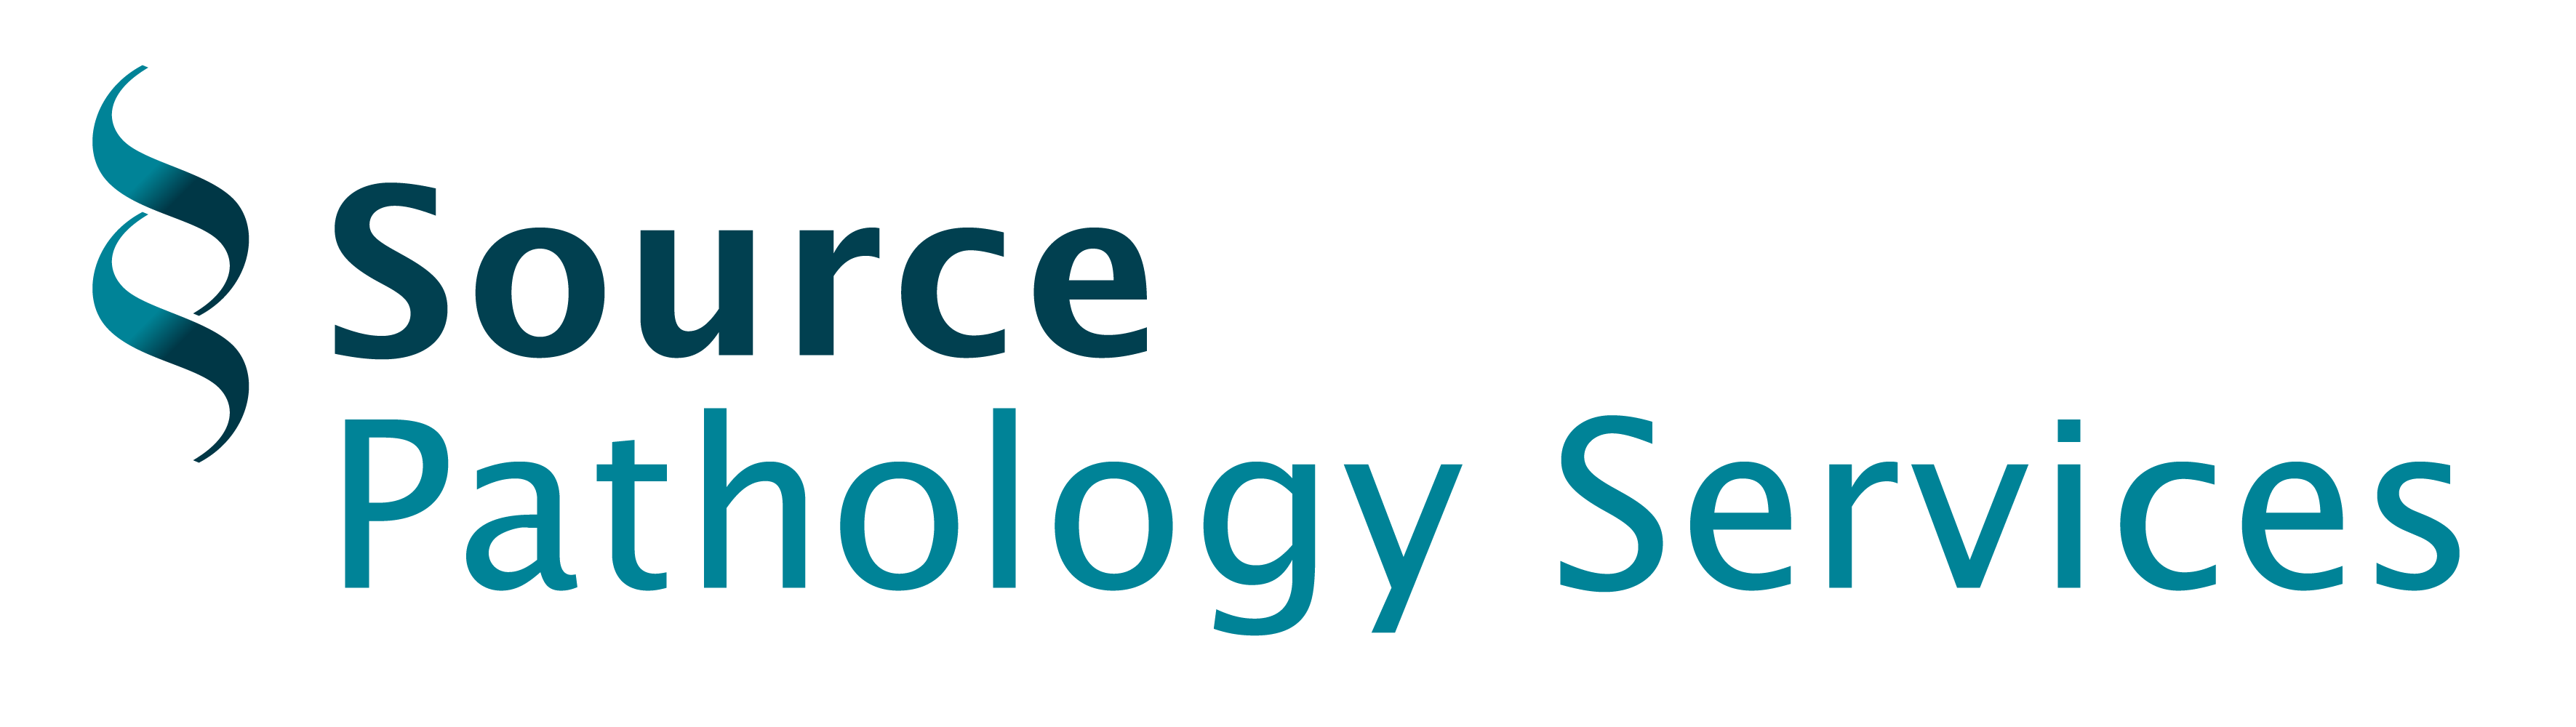 Source Pathology Services